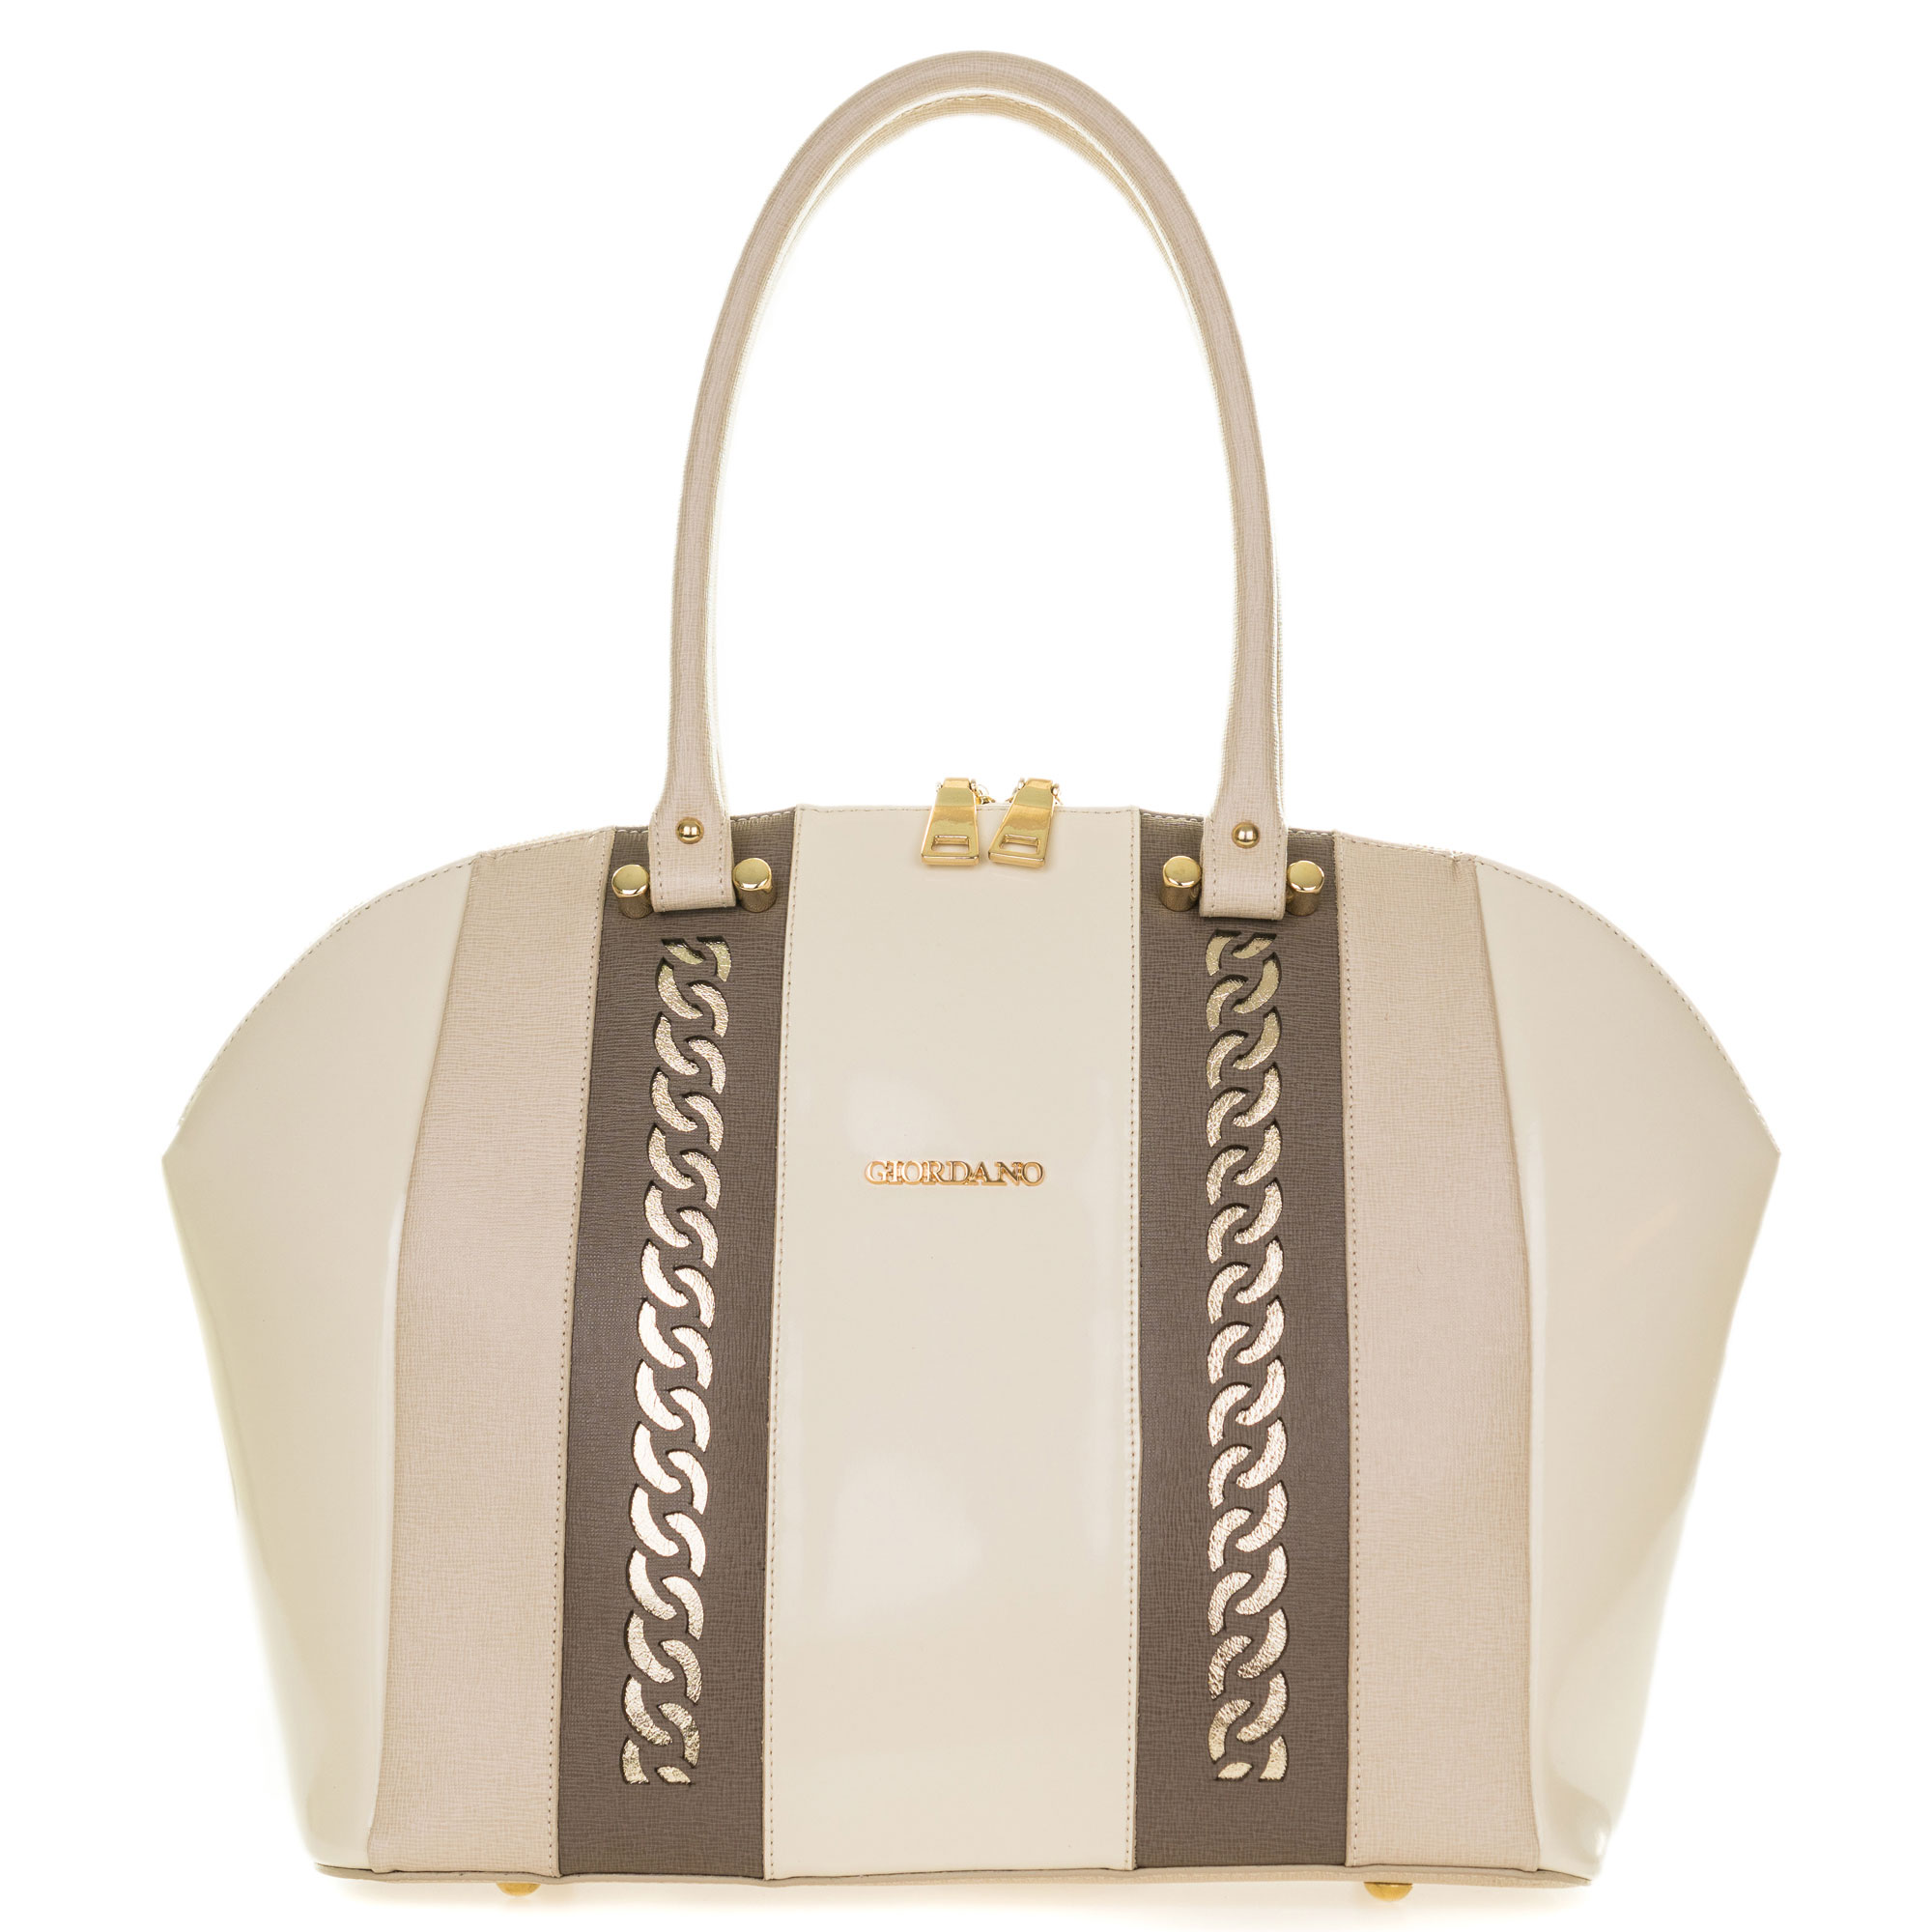 Giordano Italian Made Light Beige Leather Large Tote Handbag with Gold Chain Details - / CLEARANCE /